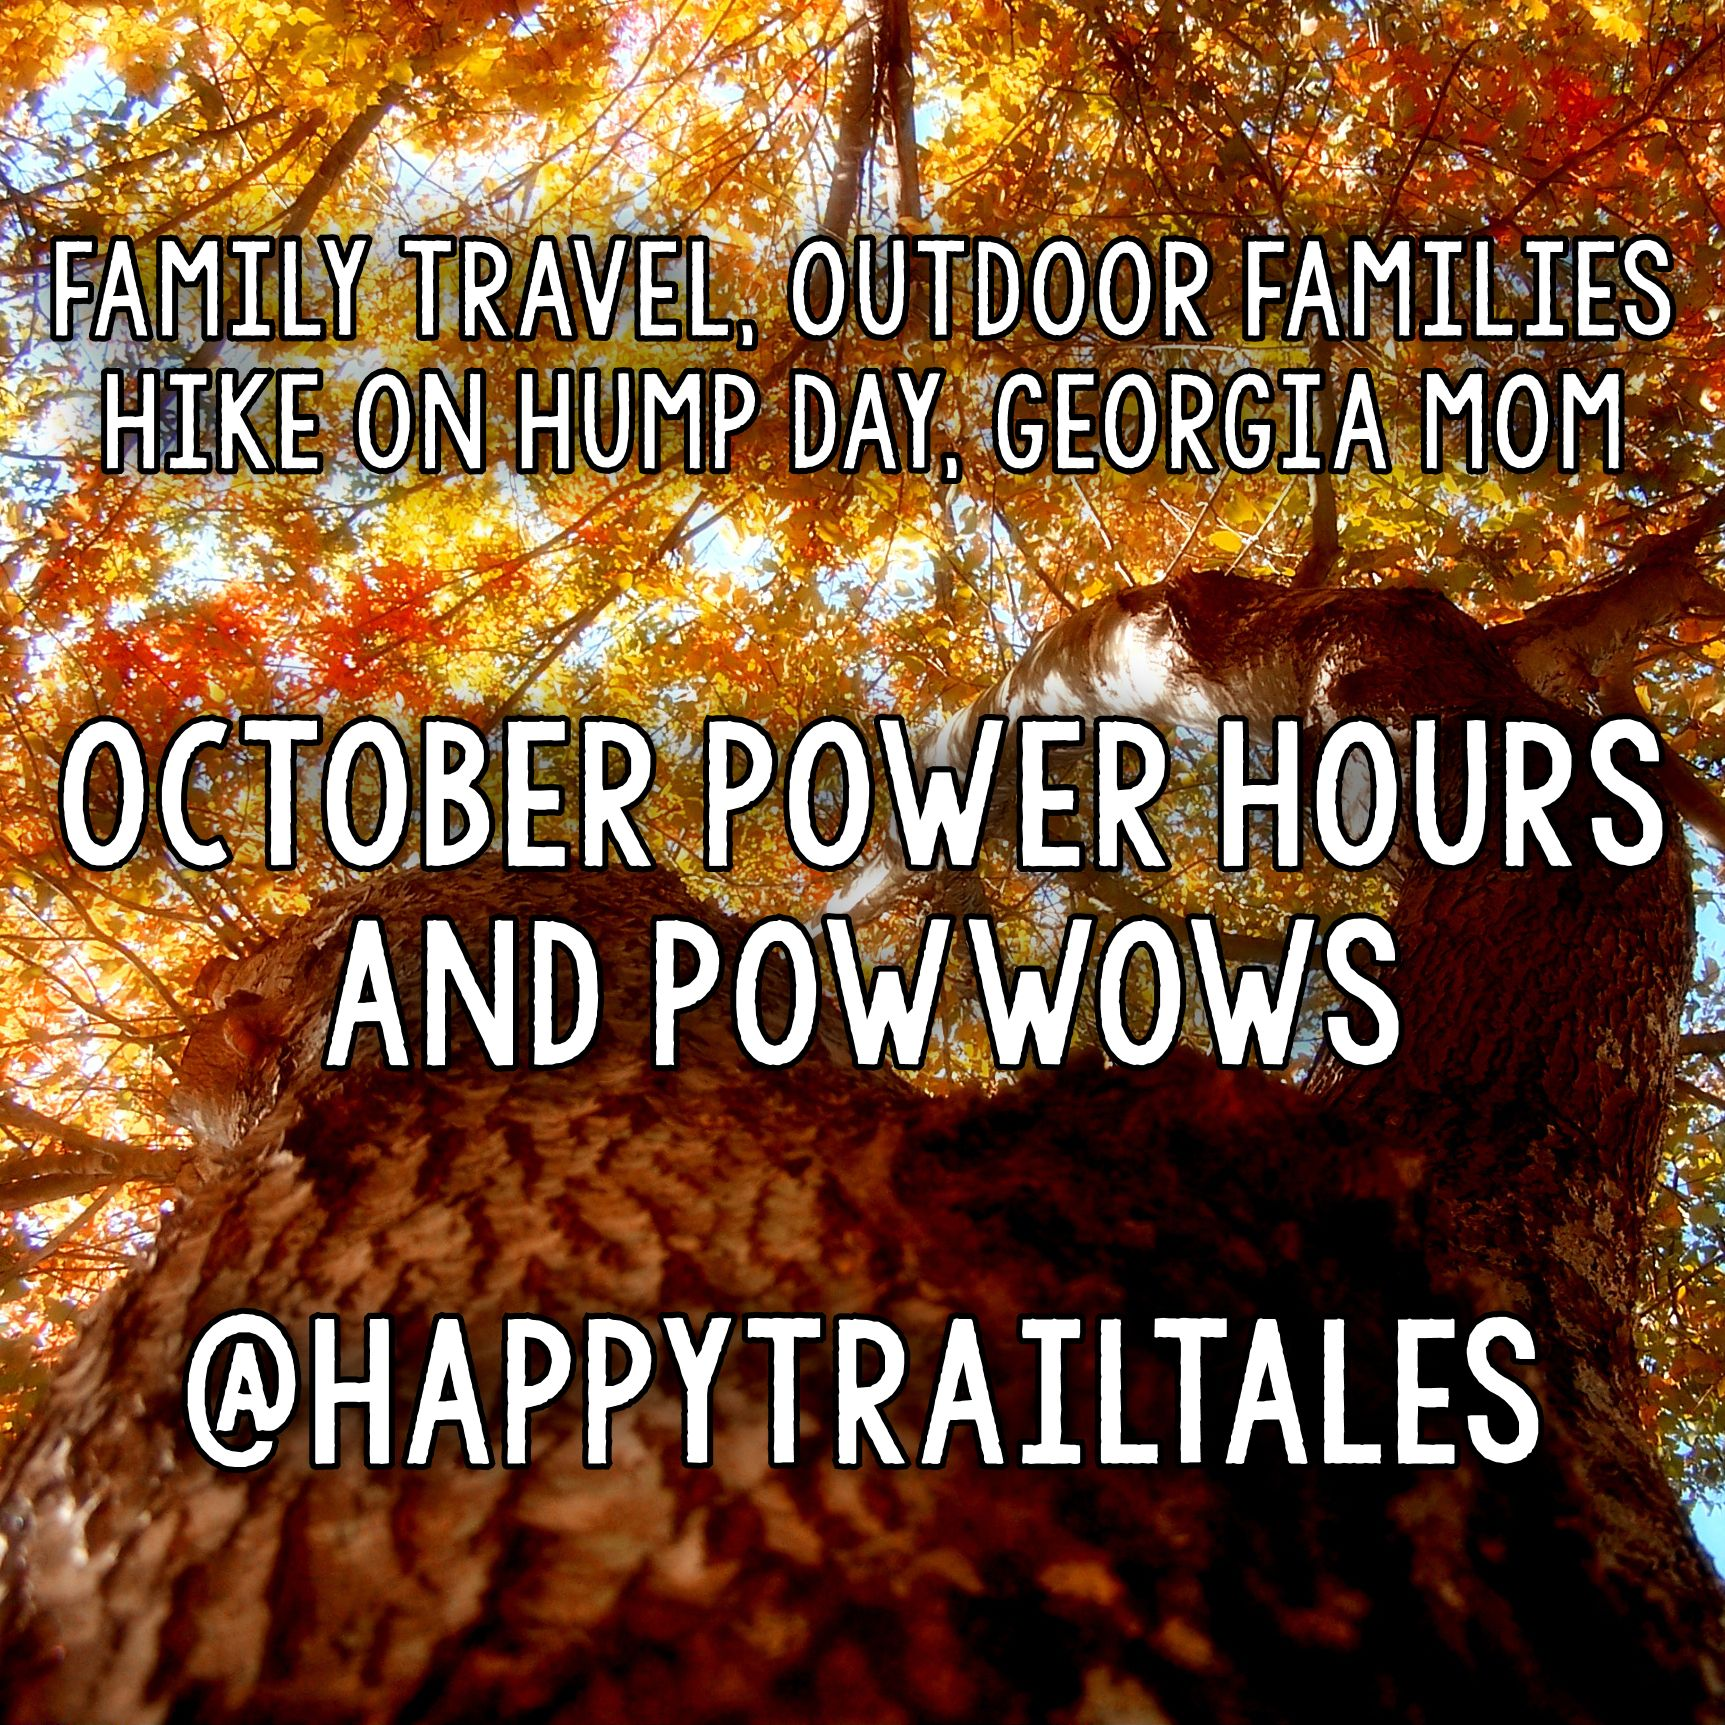 October Power Hours and PowWows